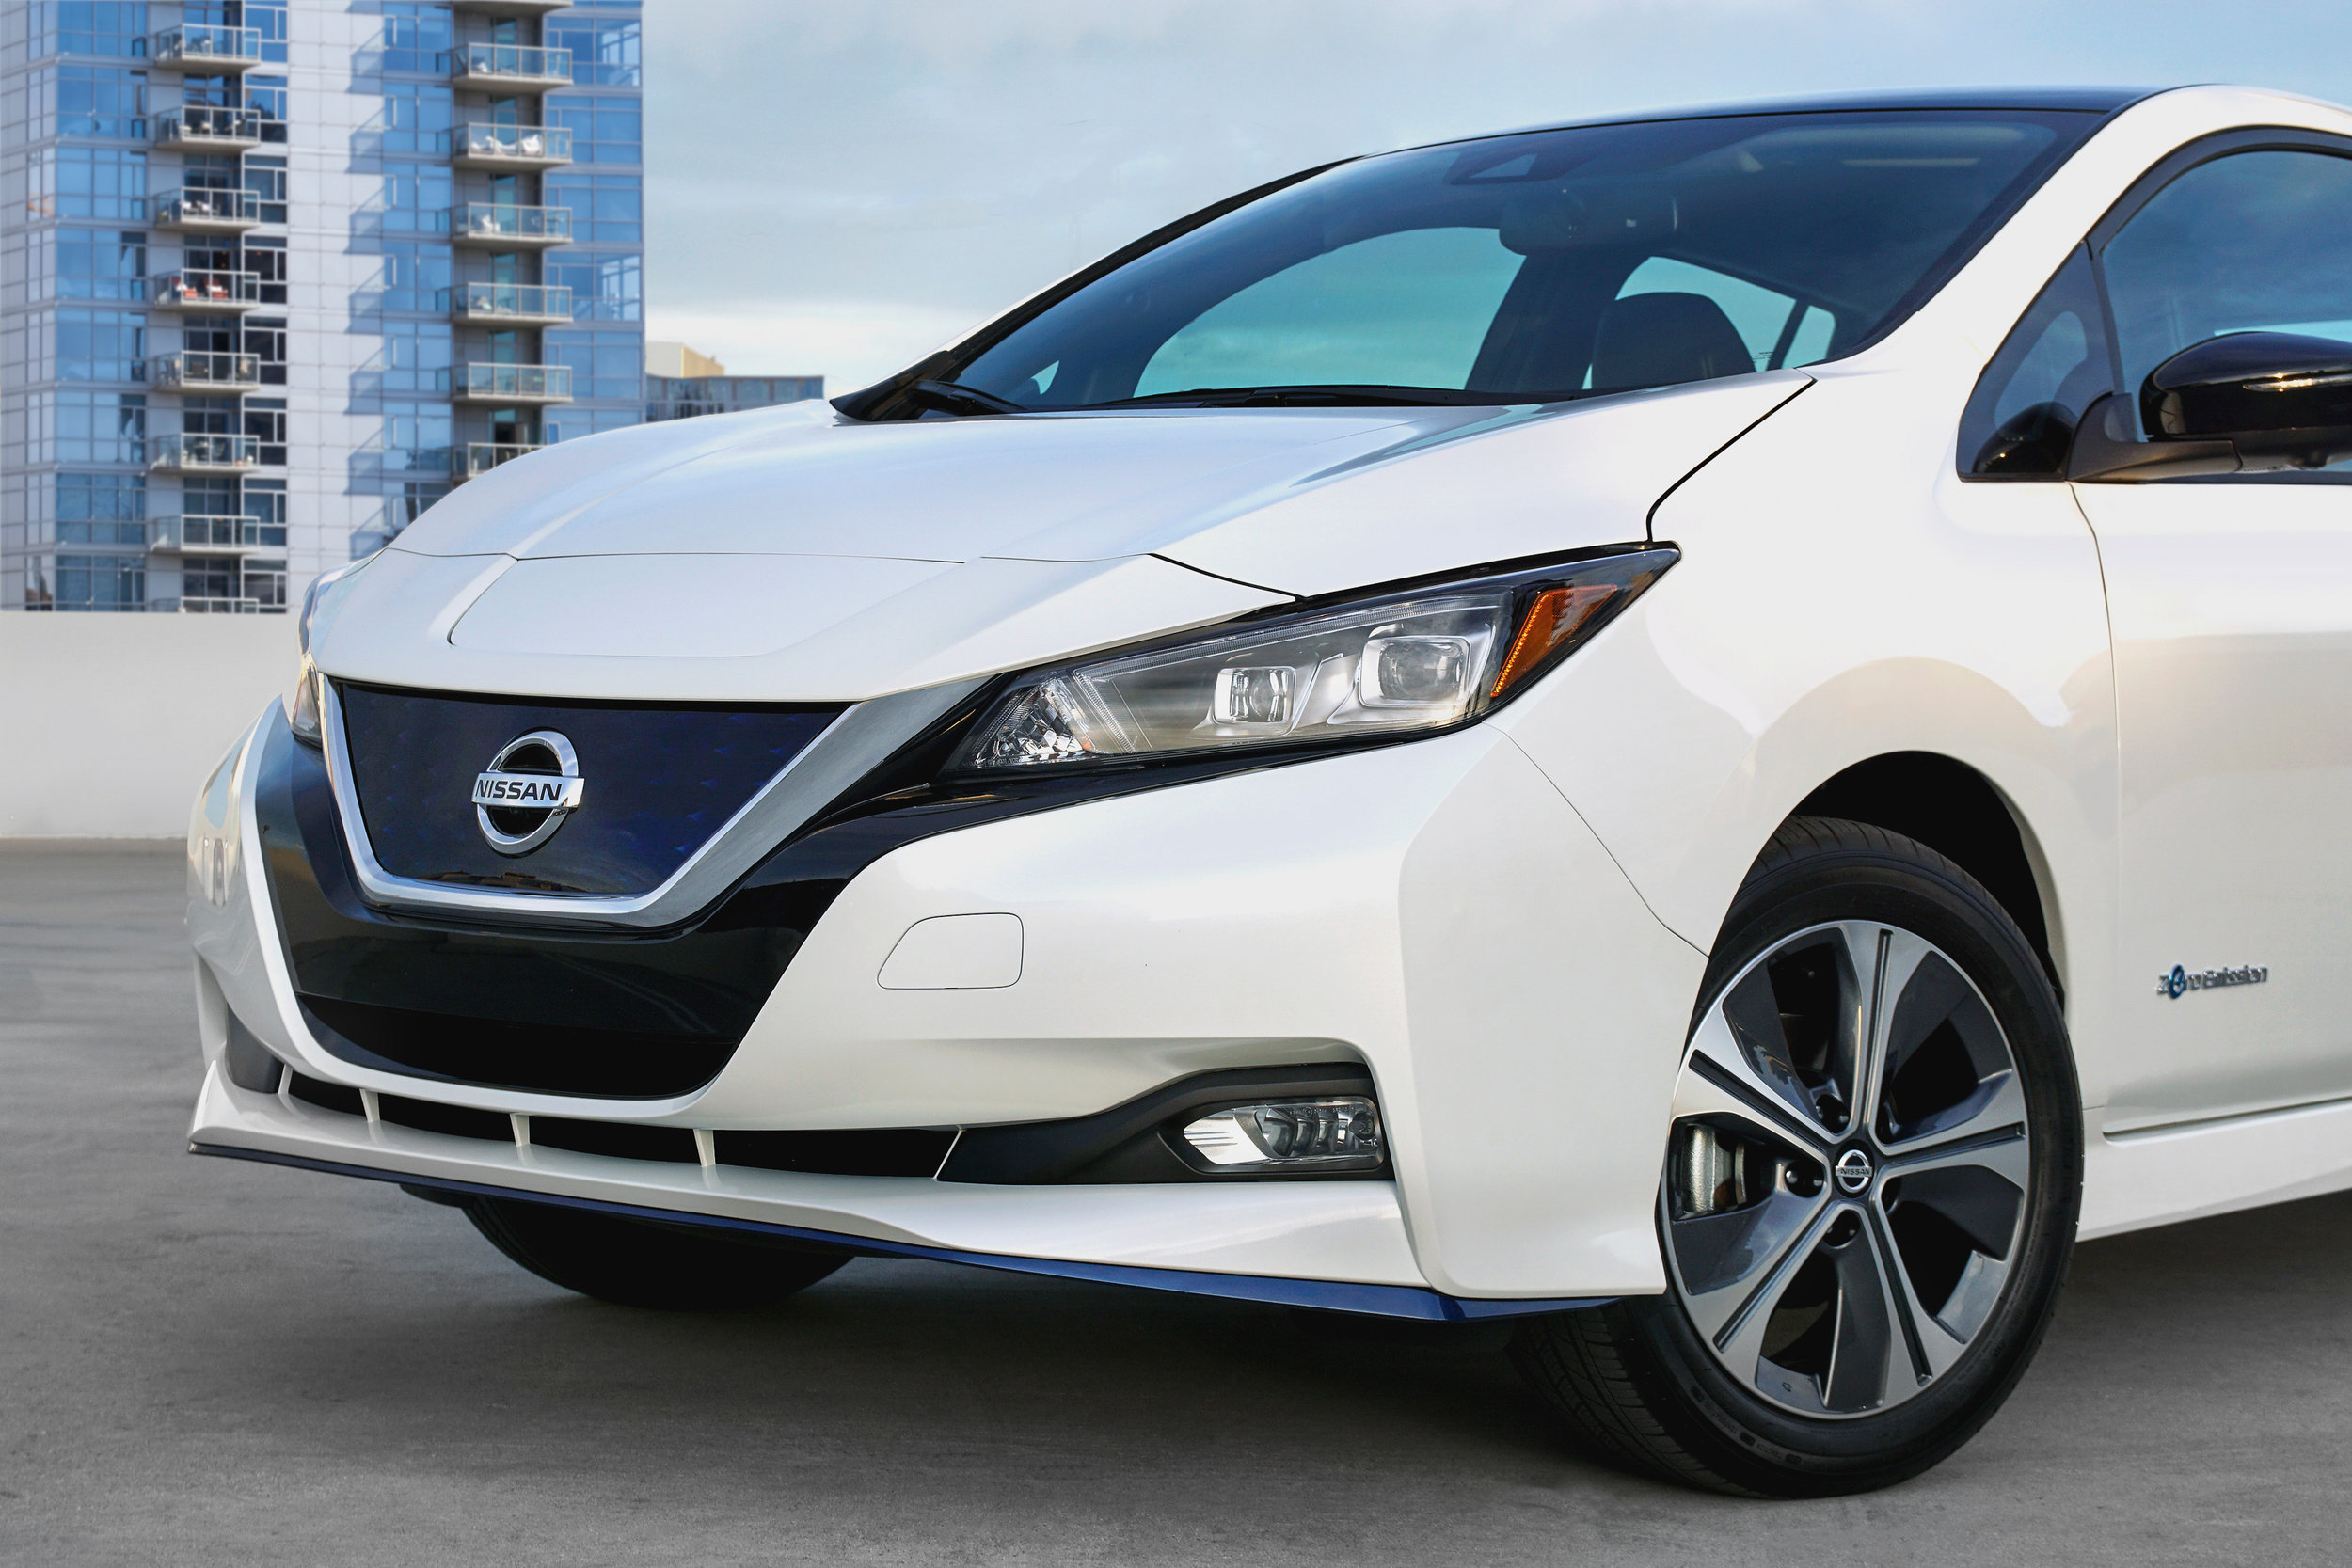 Charging accessories available for the Nissan Leaf…